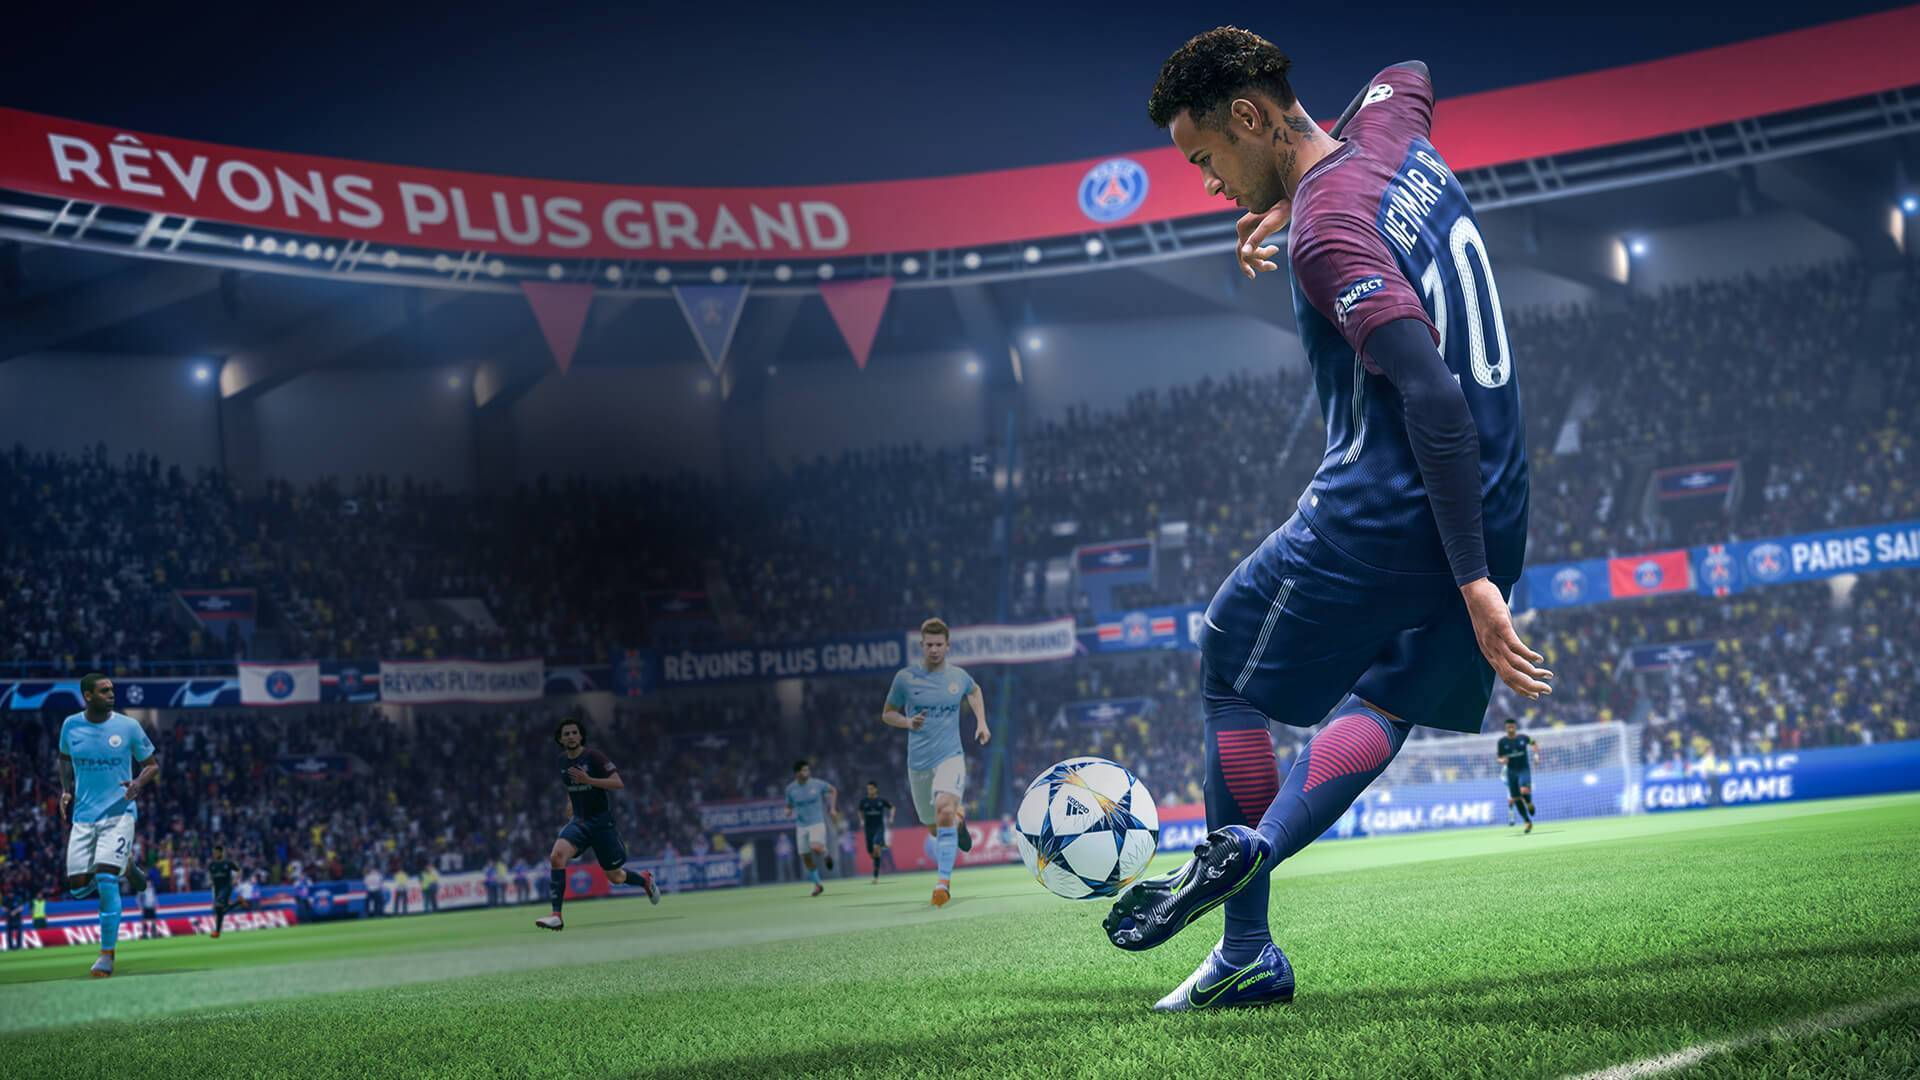 Article title about FIFA 19